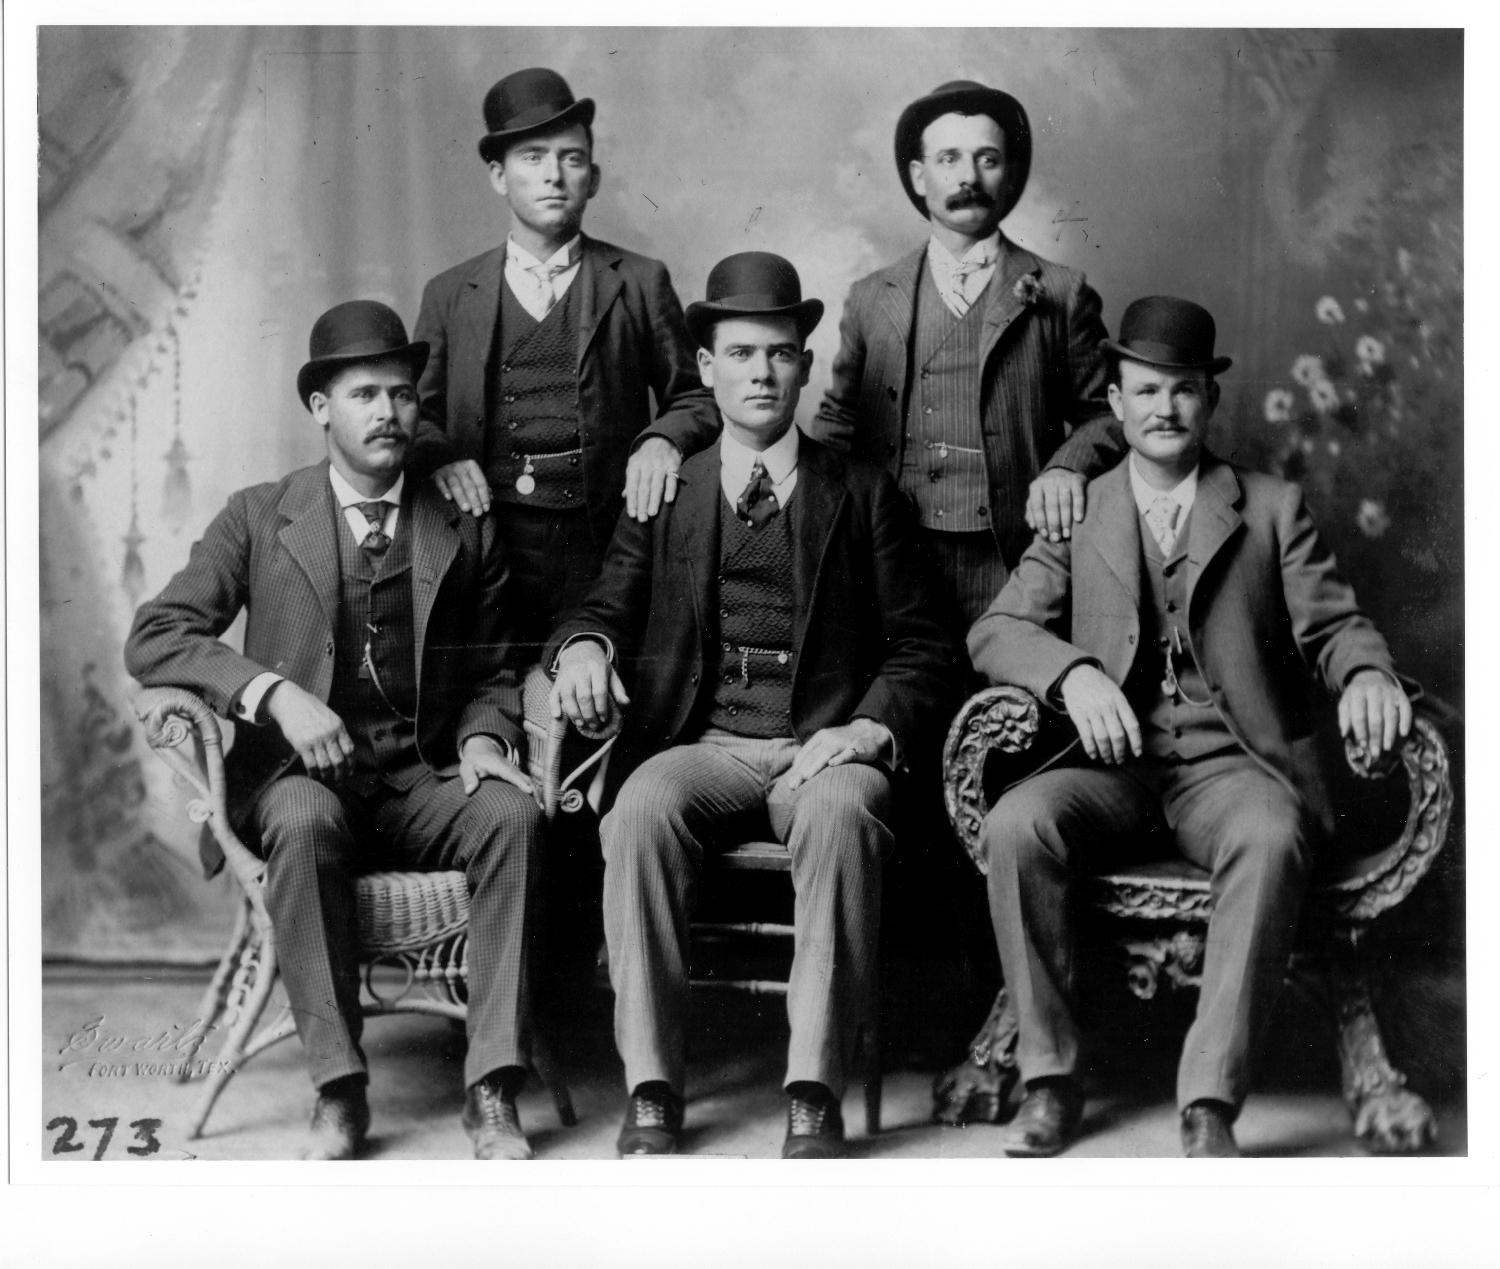 butch cassidy and the wild bunch Butch cassidy and the sundance kid  the more commonly used name for butch cassidy and sundance kid's gang was the wild bunch  they returned to the butch.